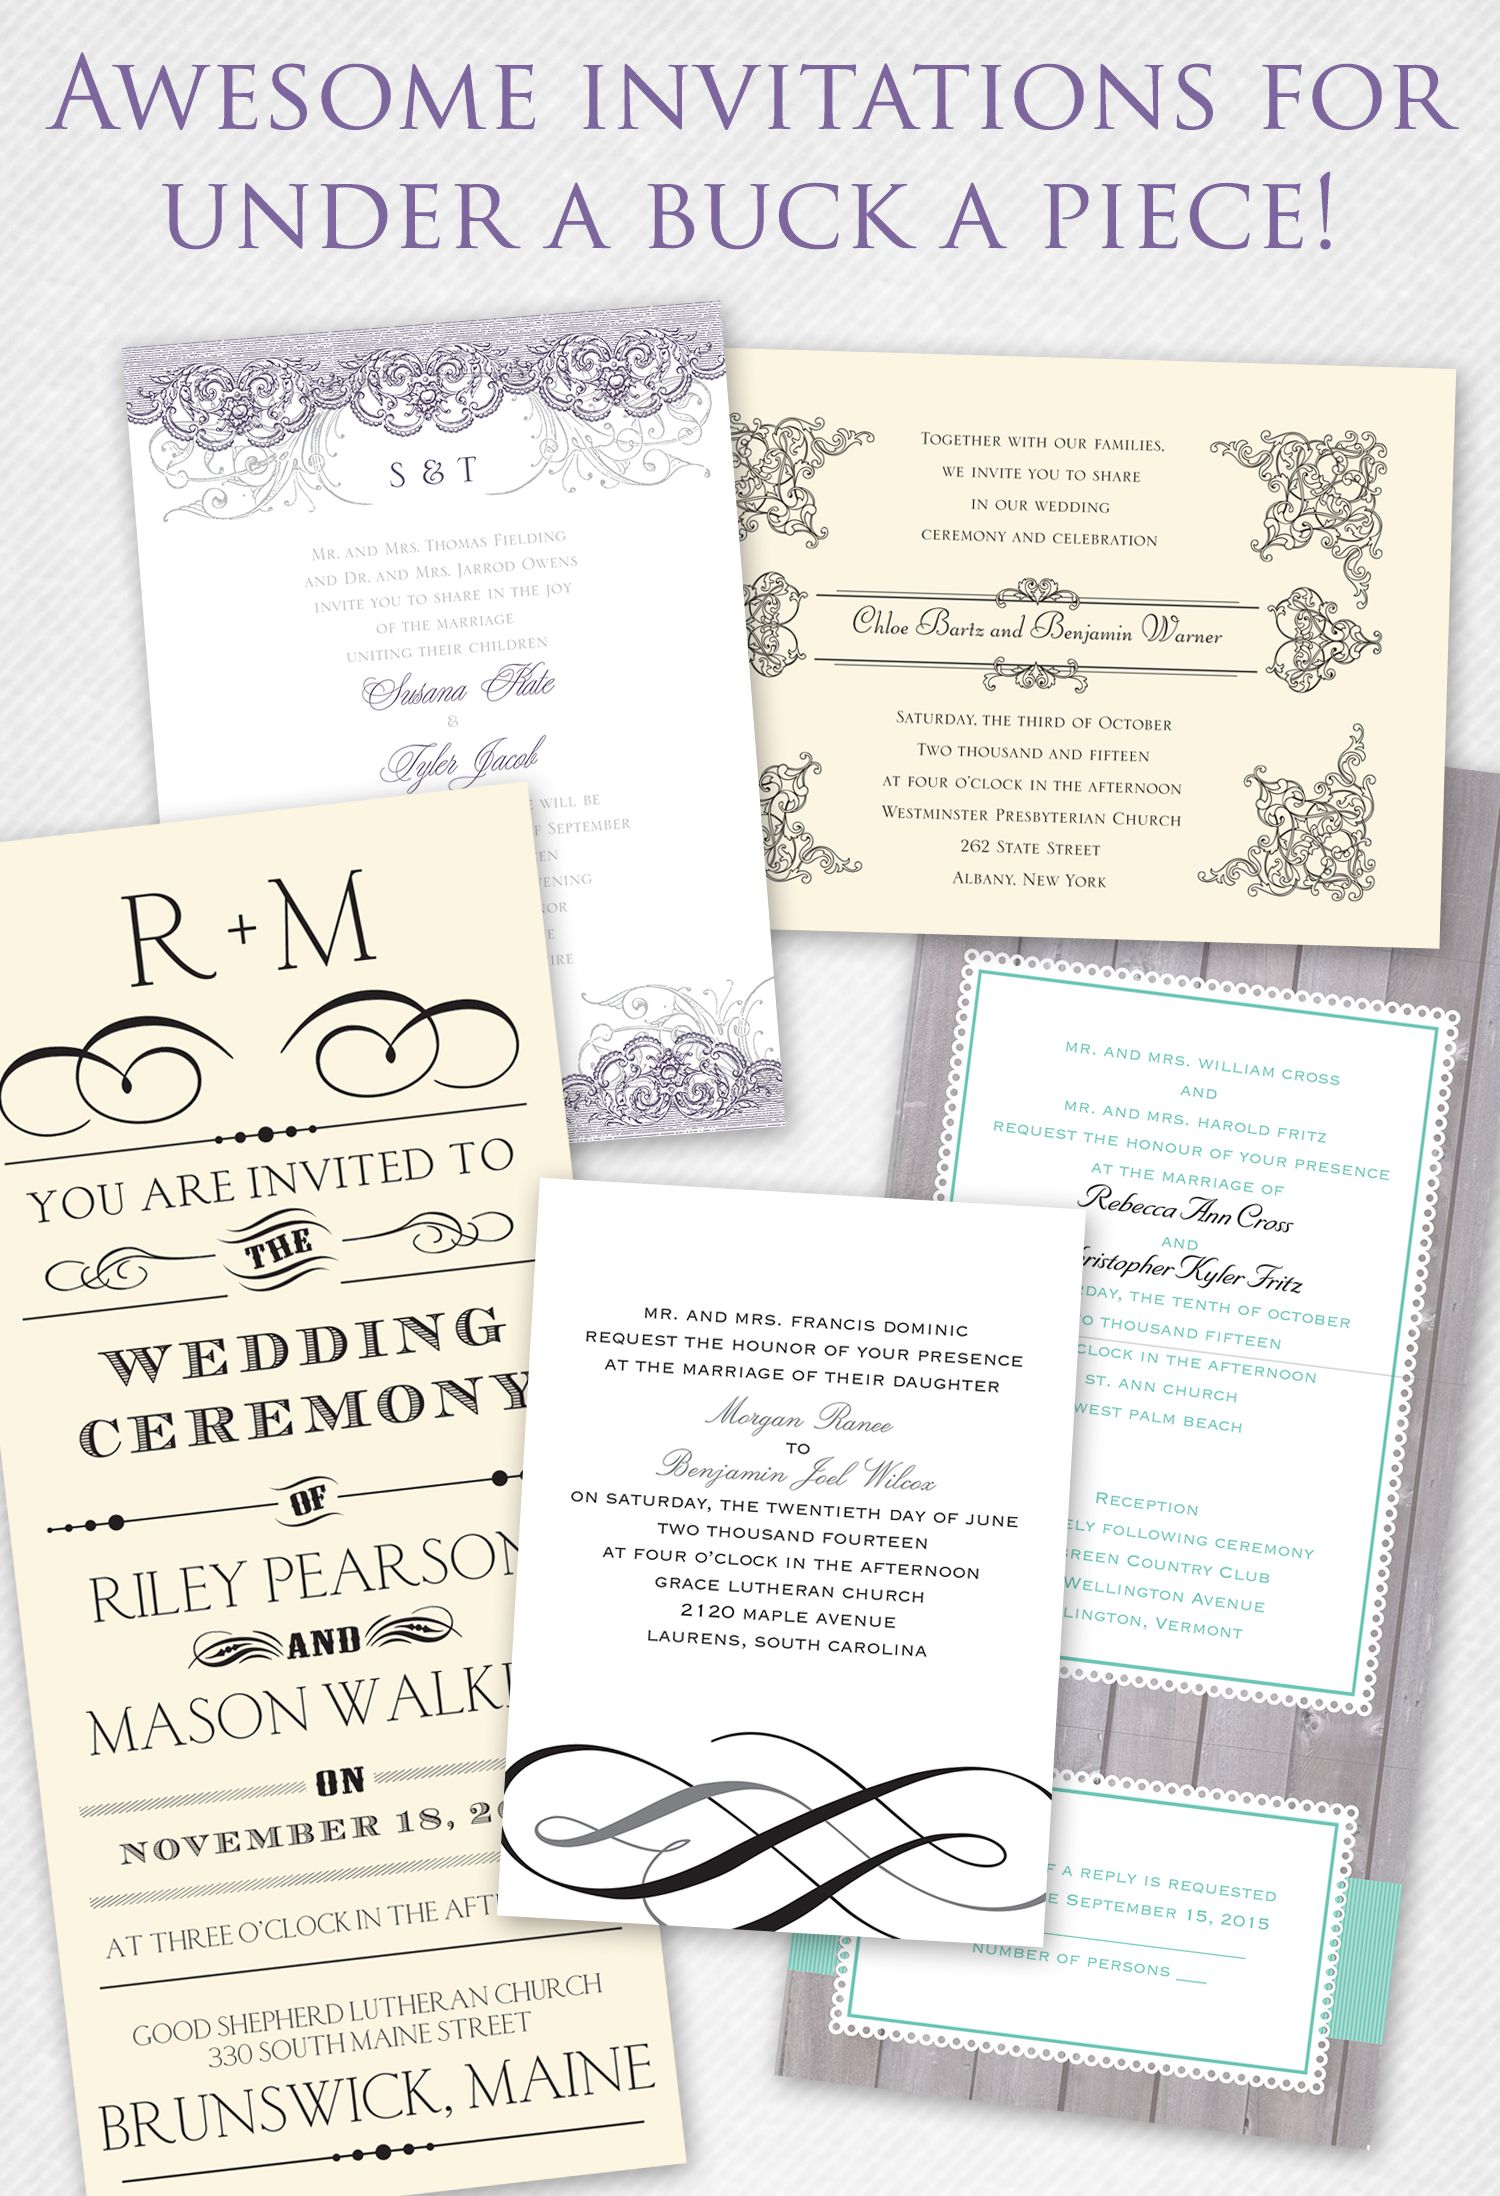 Talk About Affordable Wedding Invites Under 1 A Piece